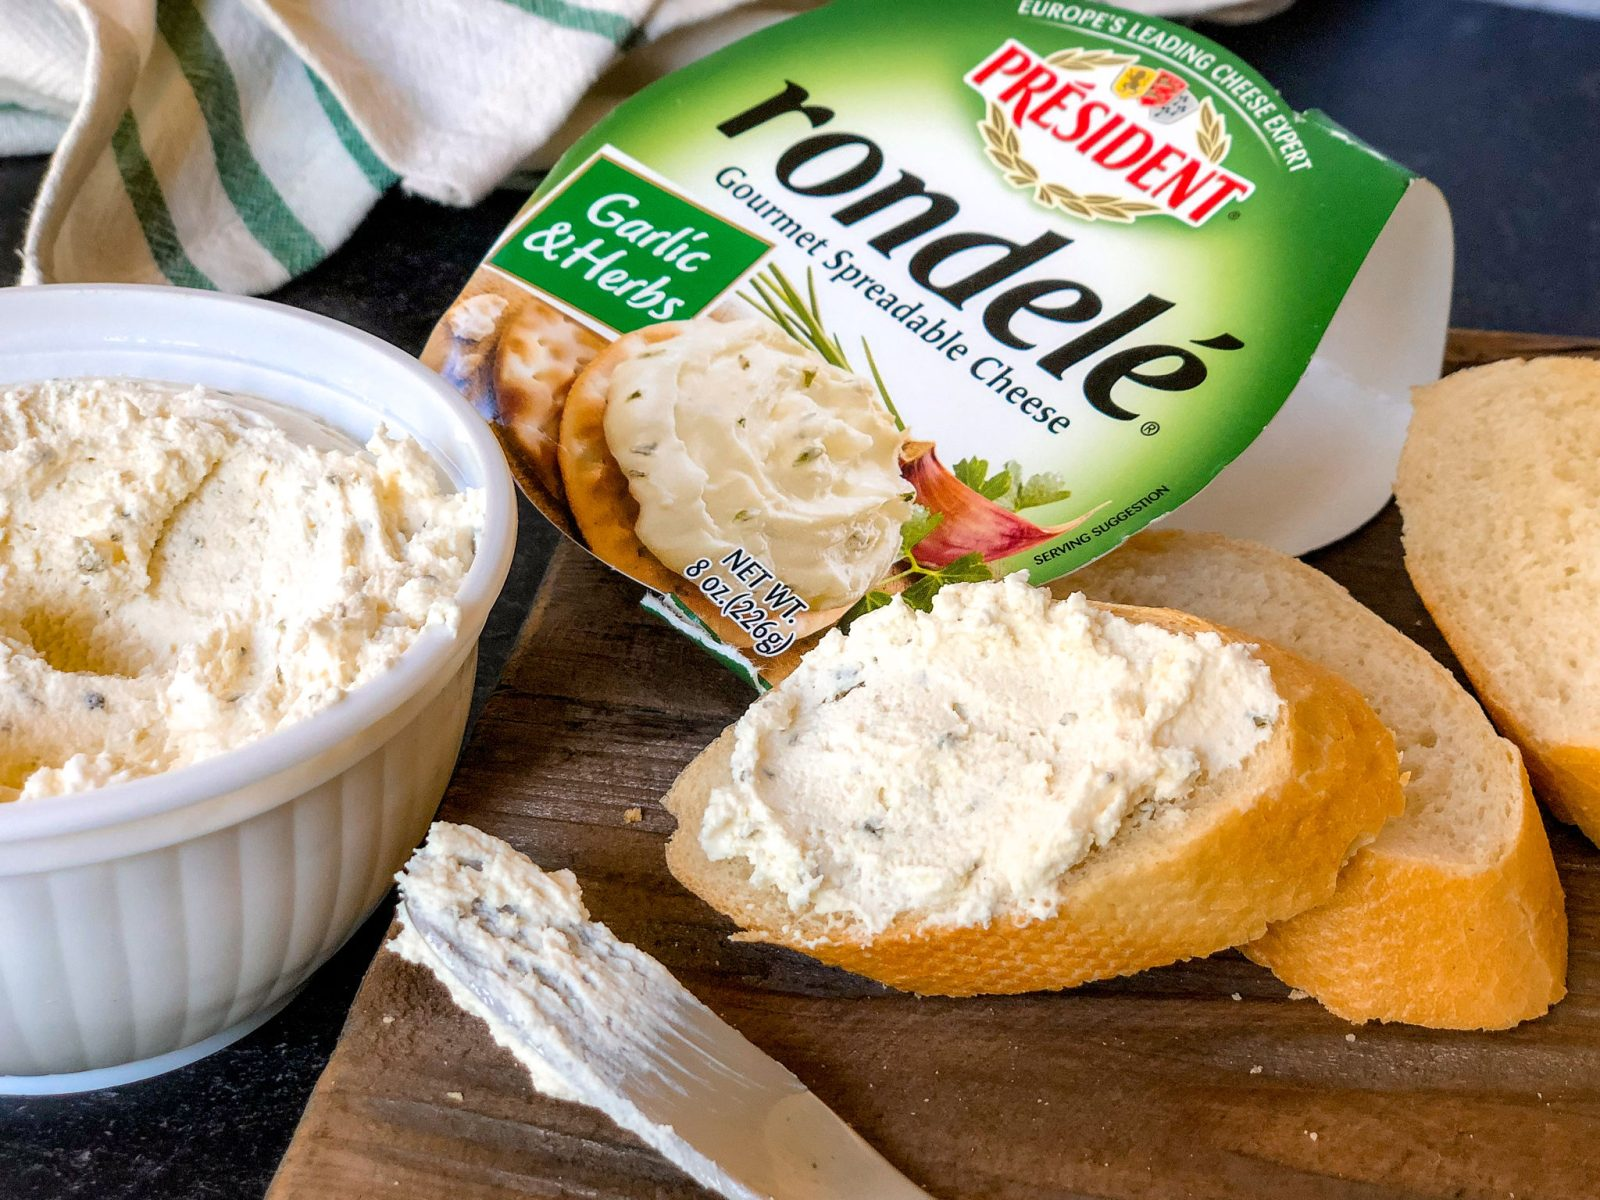 Rondele Cheese Spread Just $1.99 At Publix (Reg $4.89) on I Heart Publix 1